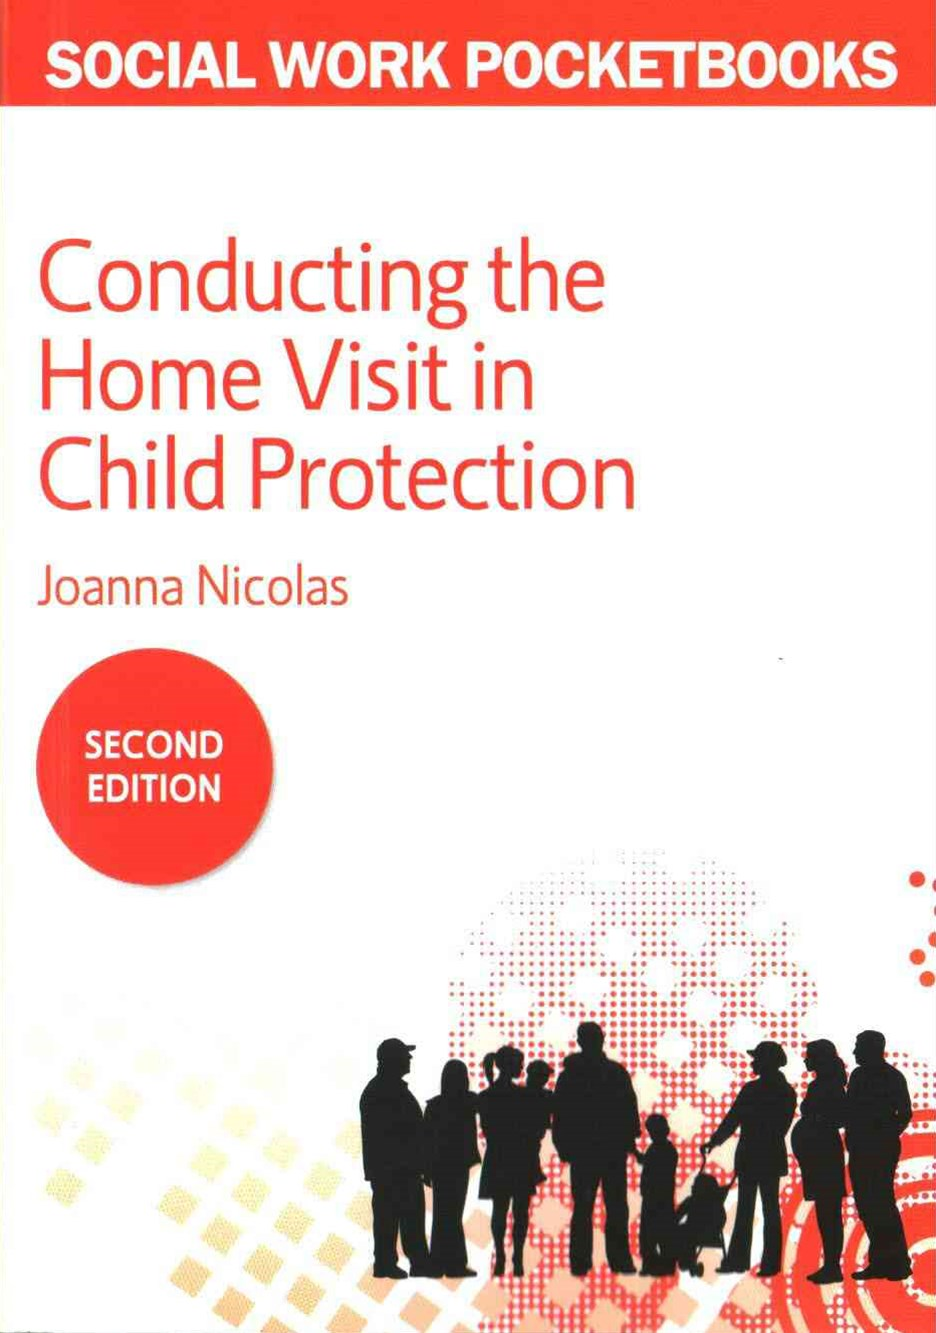 Conducting the Home Visit in Child Protection